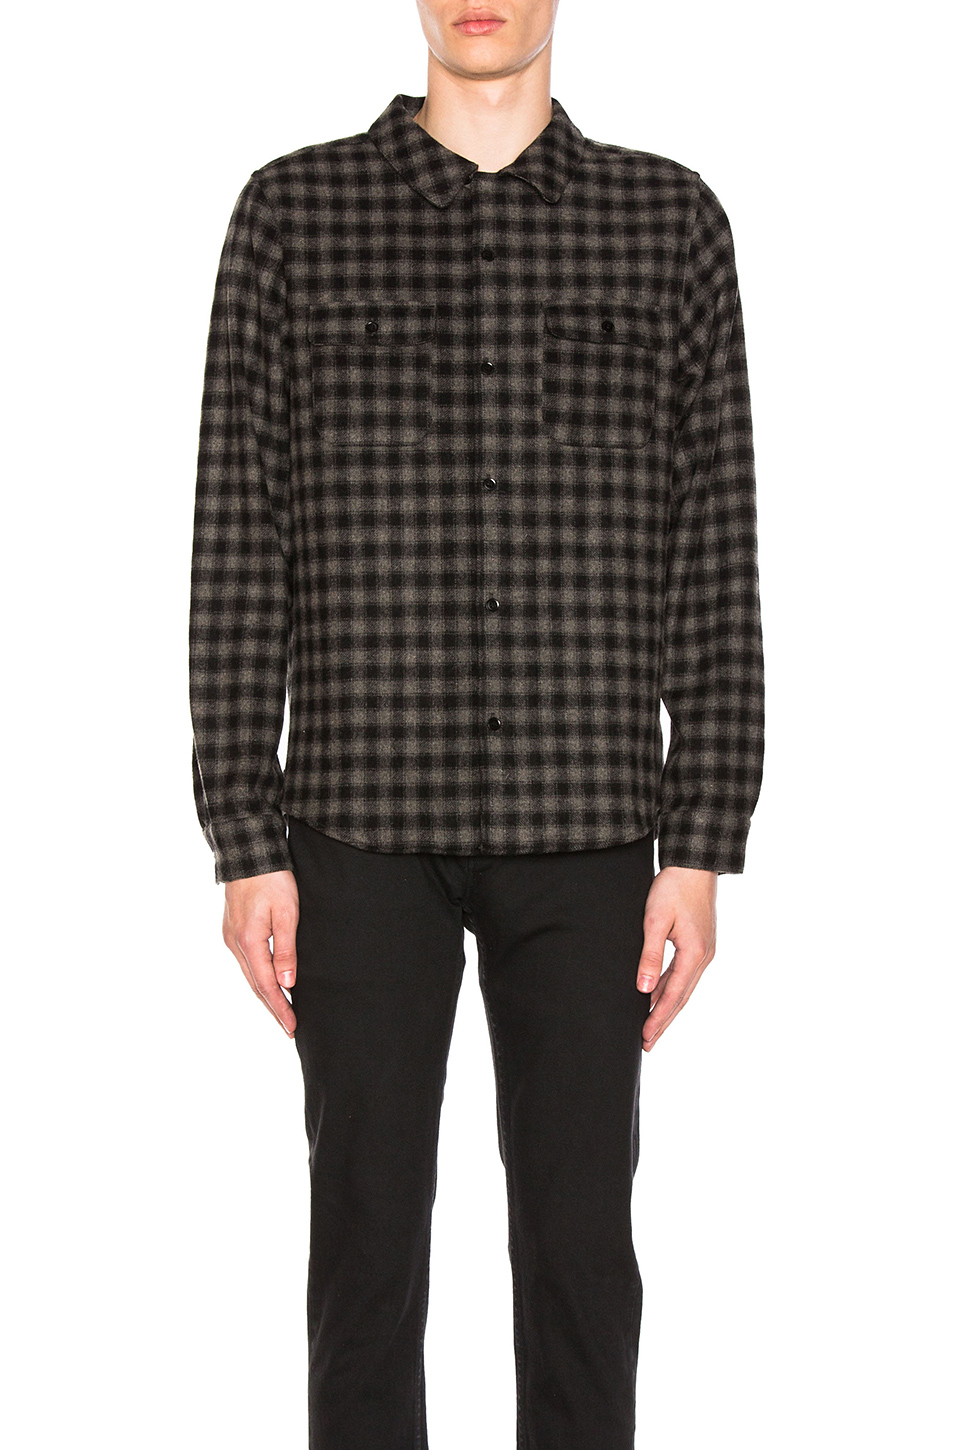 A.P.C. Flannel Shirt in Anthracite